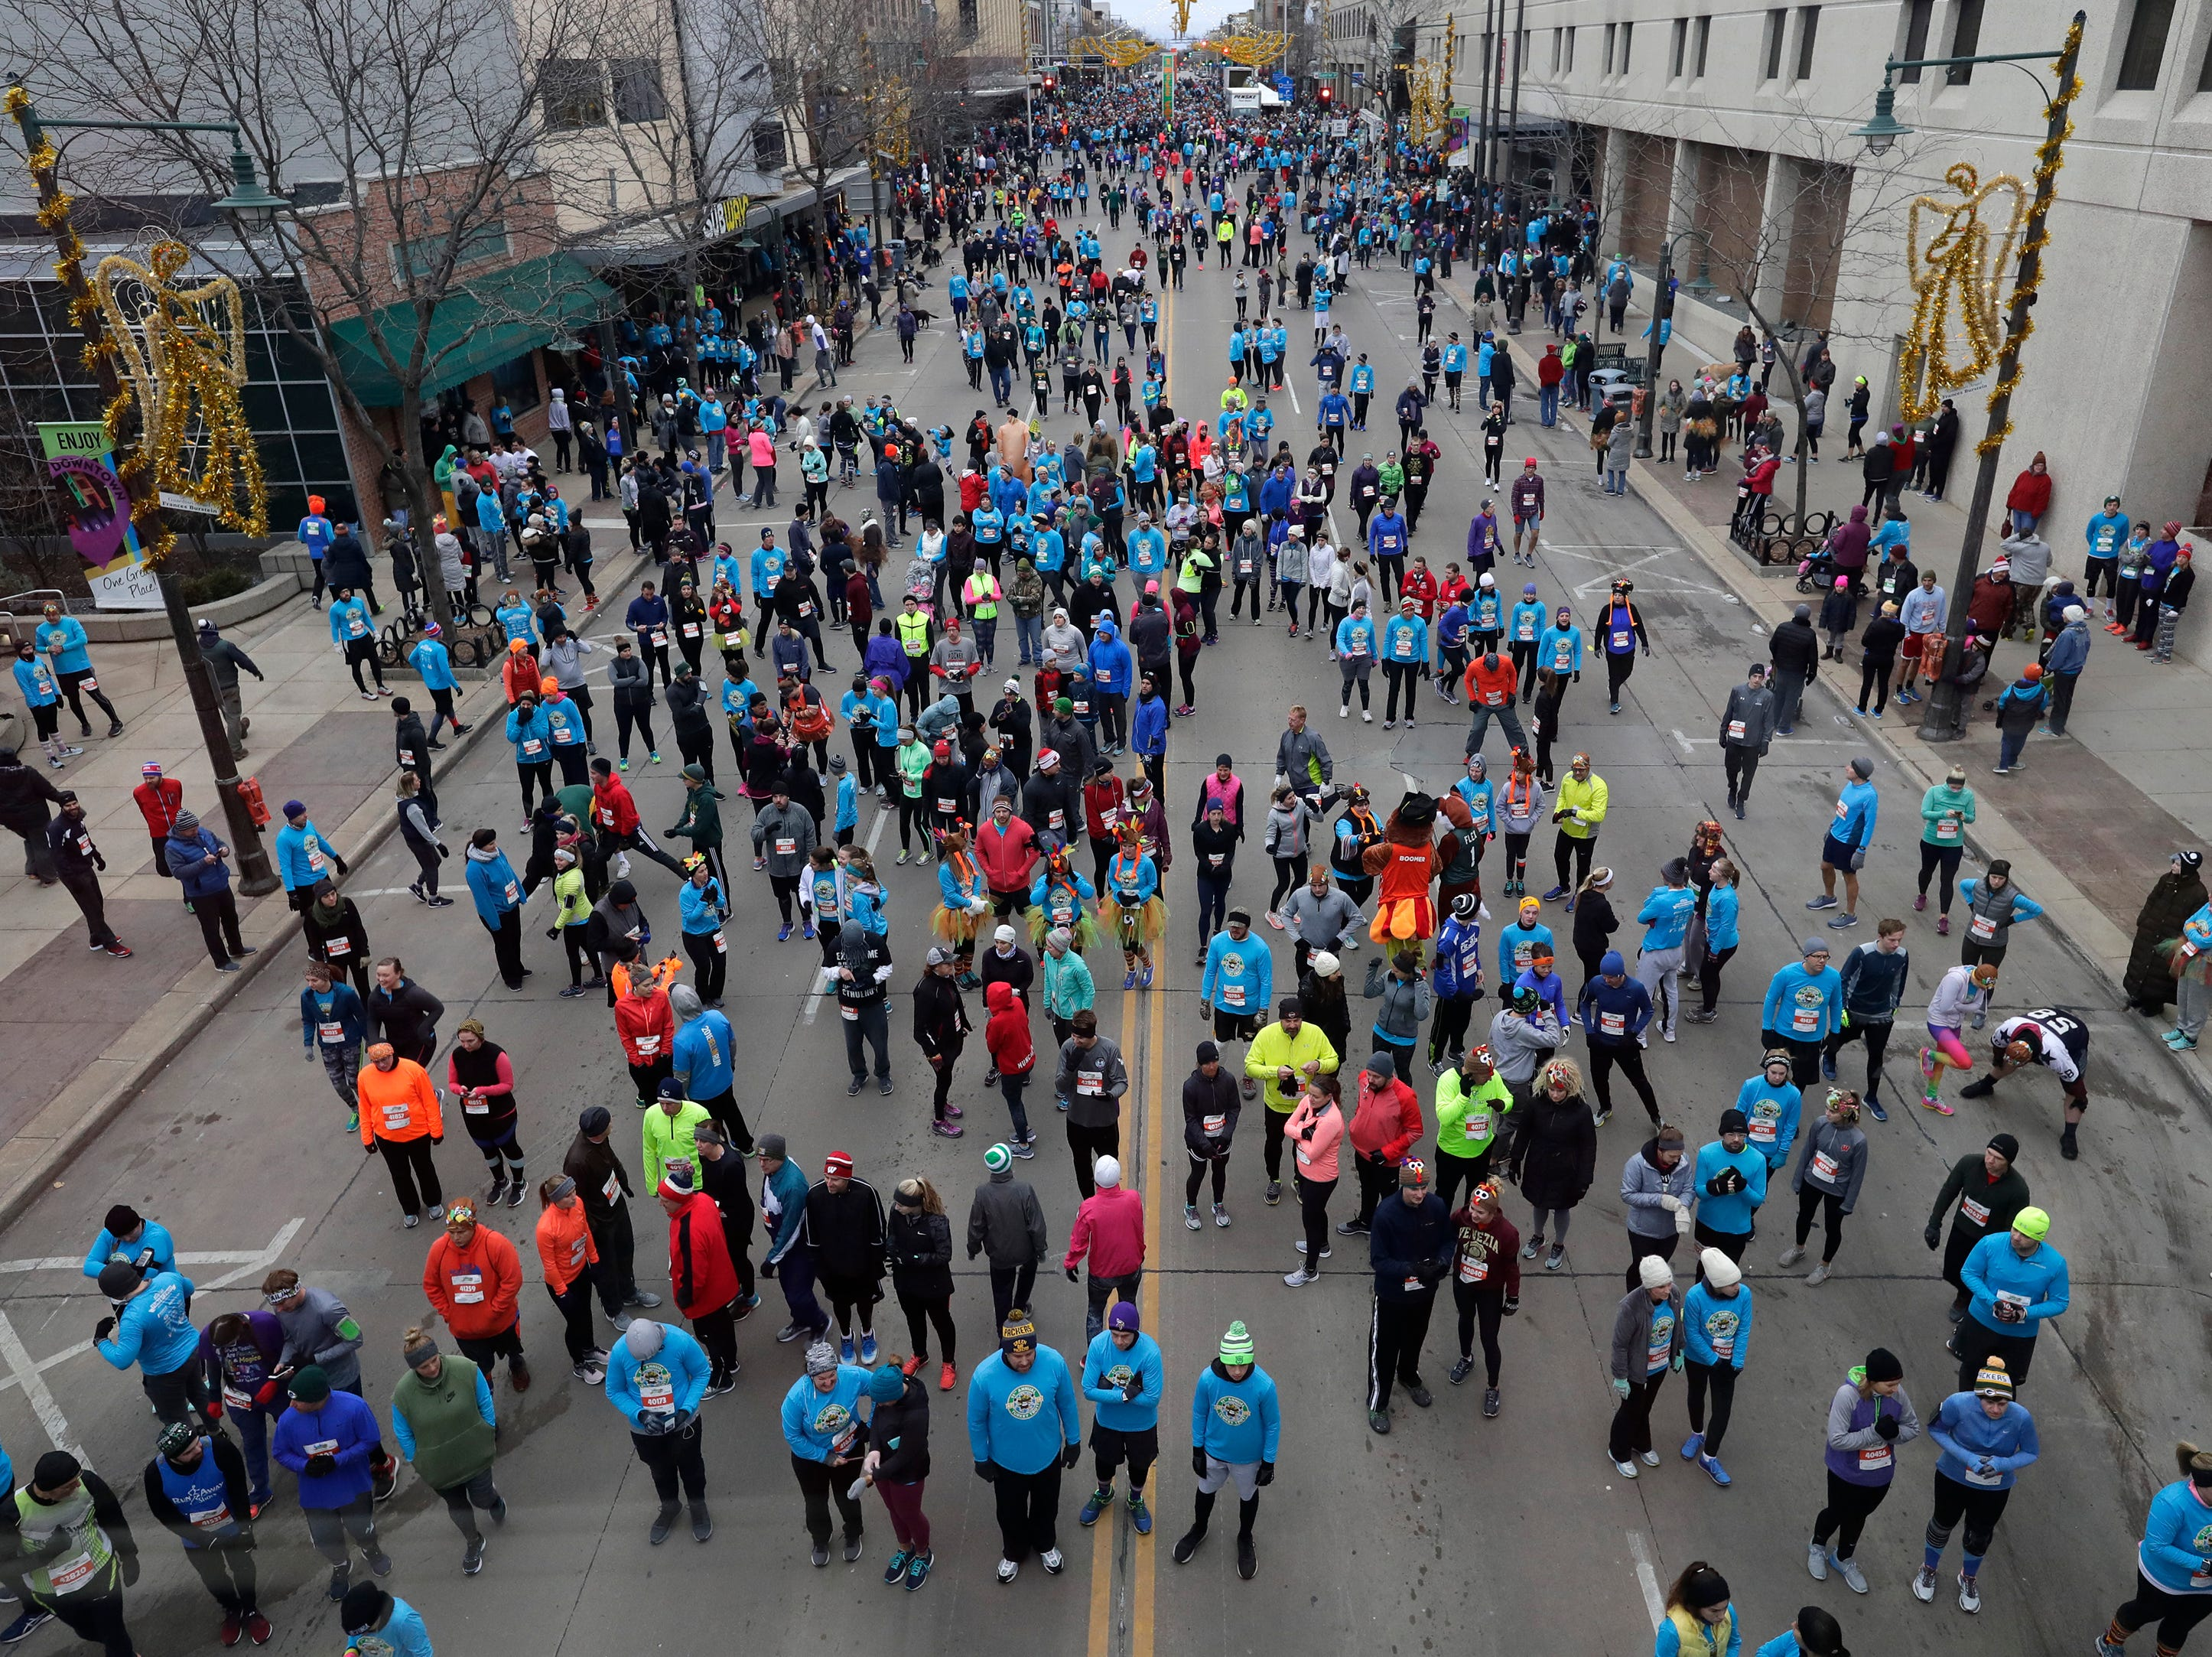 Participants begin to make their way to the starting line of the 11th Annual Festival Foods Turkey Trot Thursday, November 22, 2018, in Appleton, Wis. 